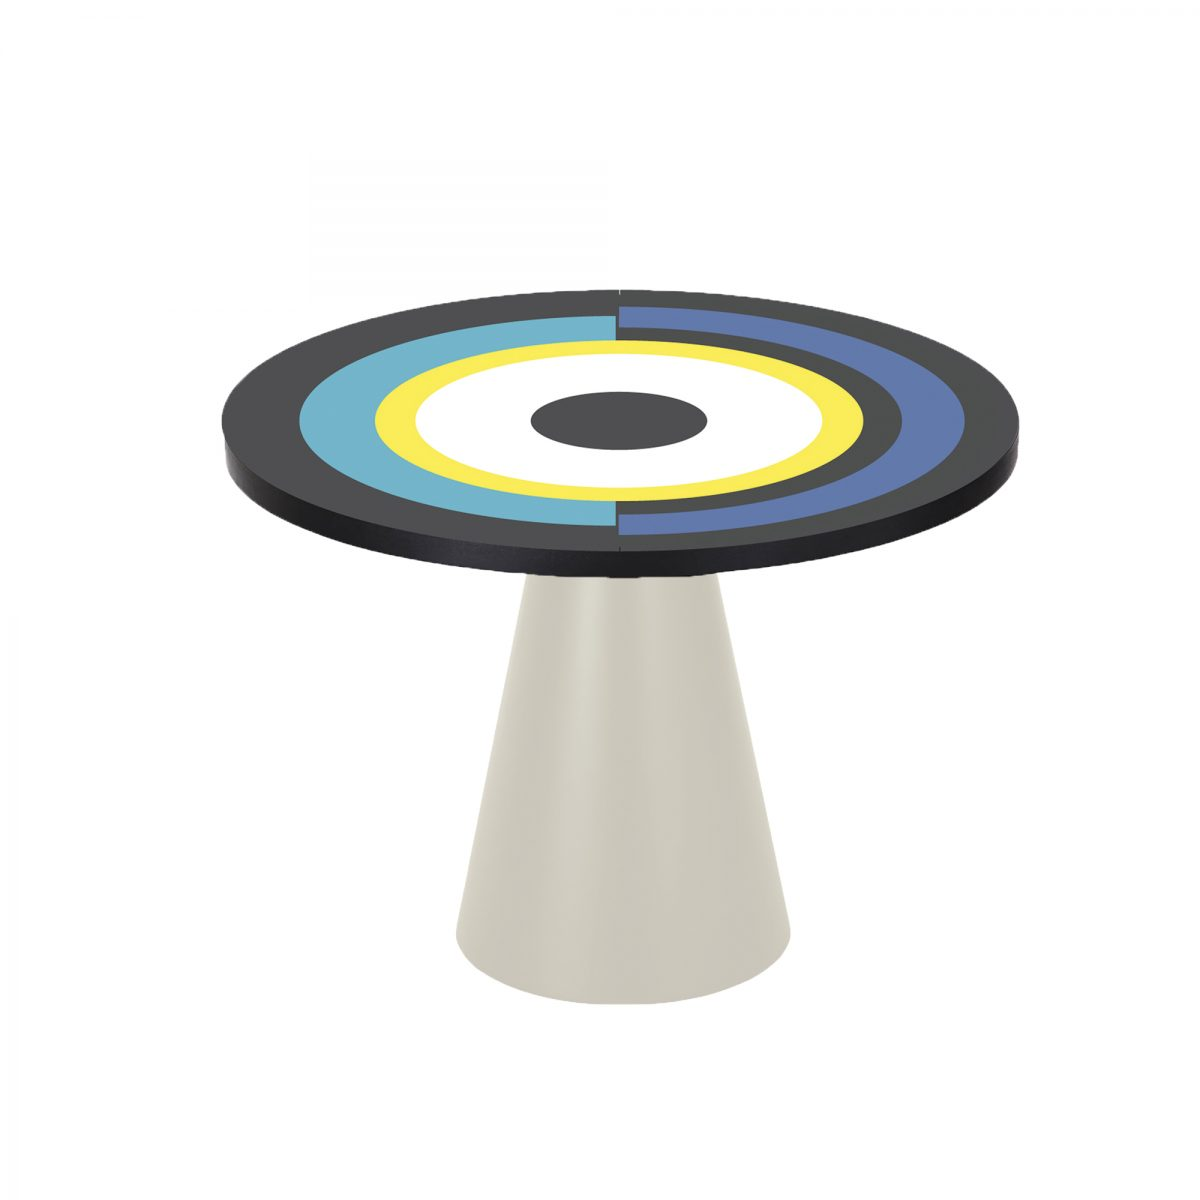 1-maison-dada-sonia-et-caetera-1-circle-01-tables-dining-tables